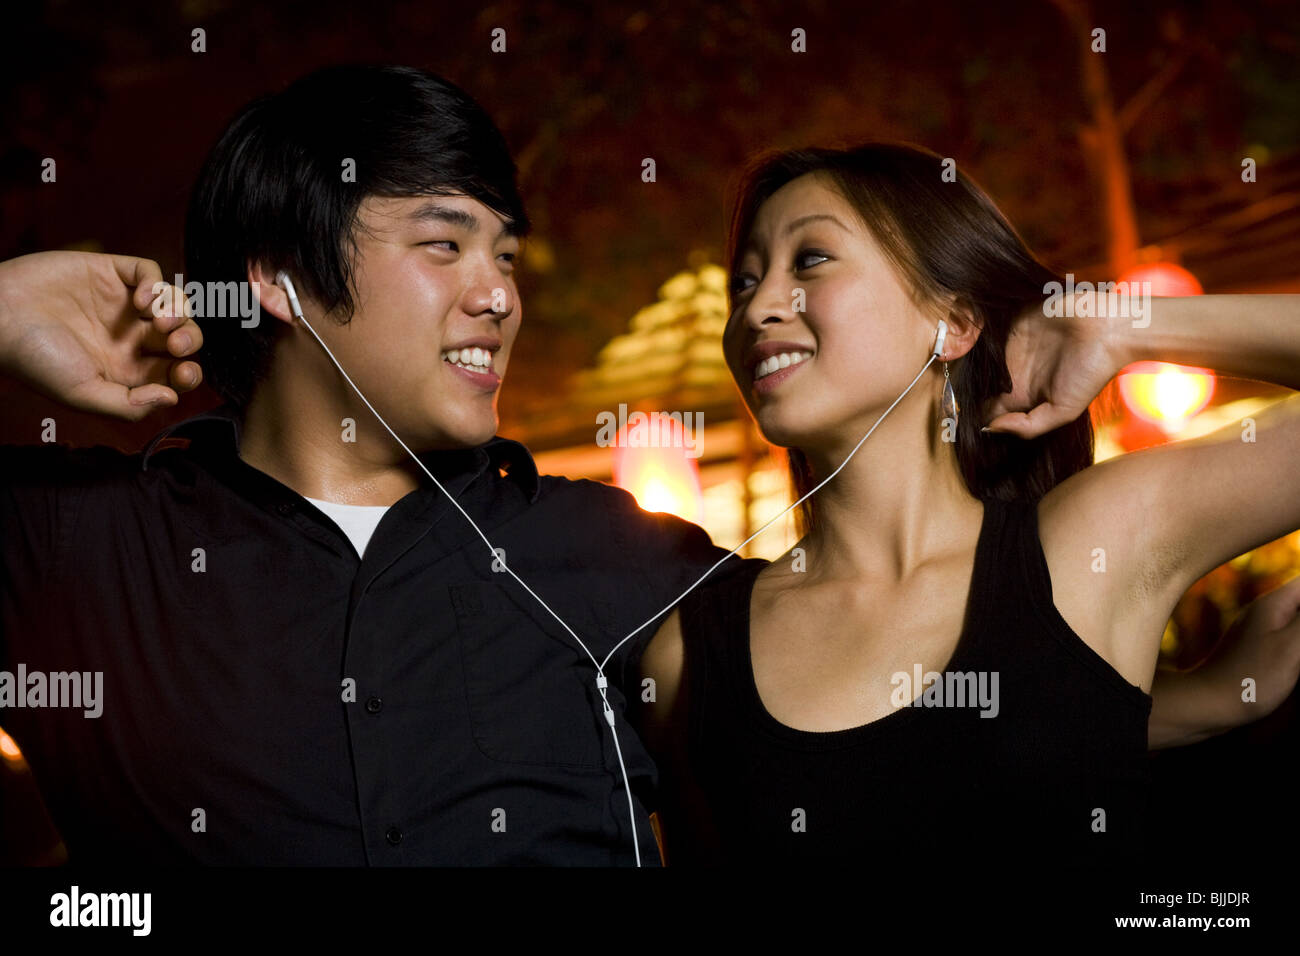 Couple listening to mp3 player outdoors dancing and smiling - Stock Image